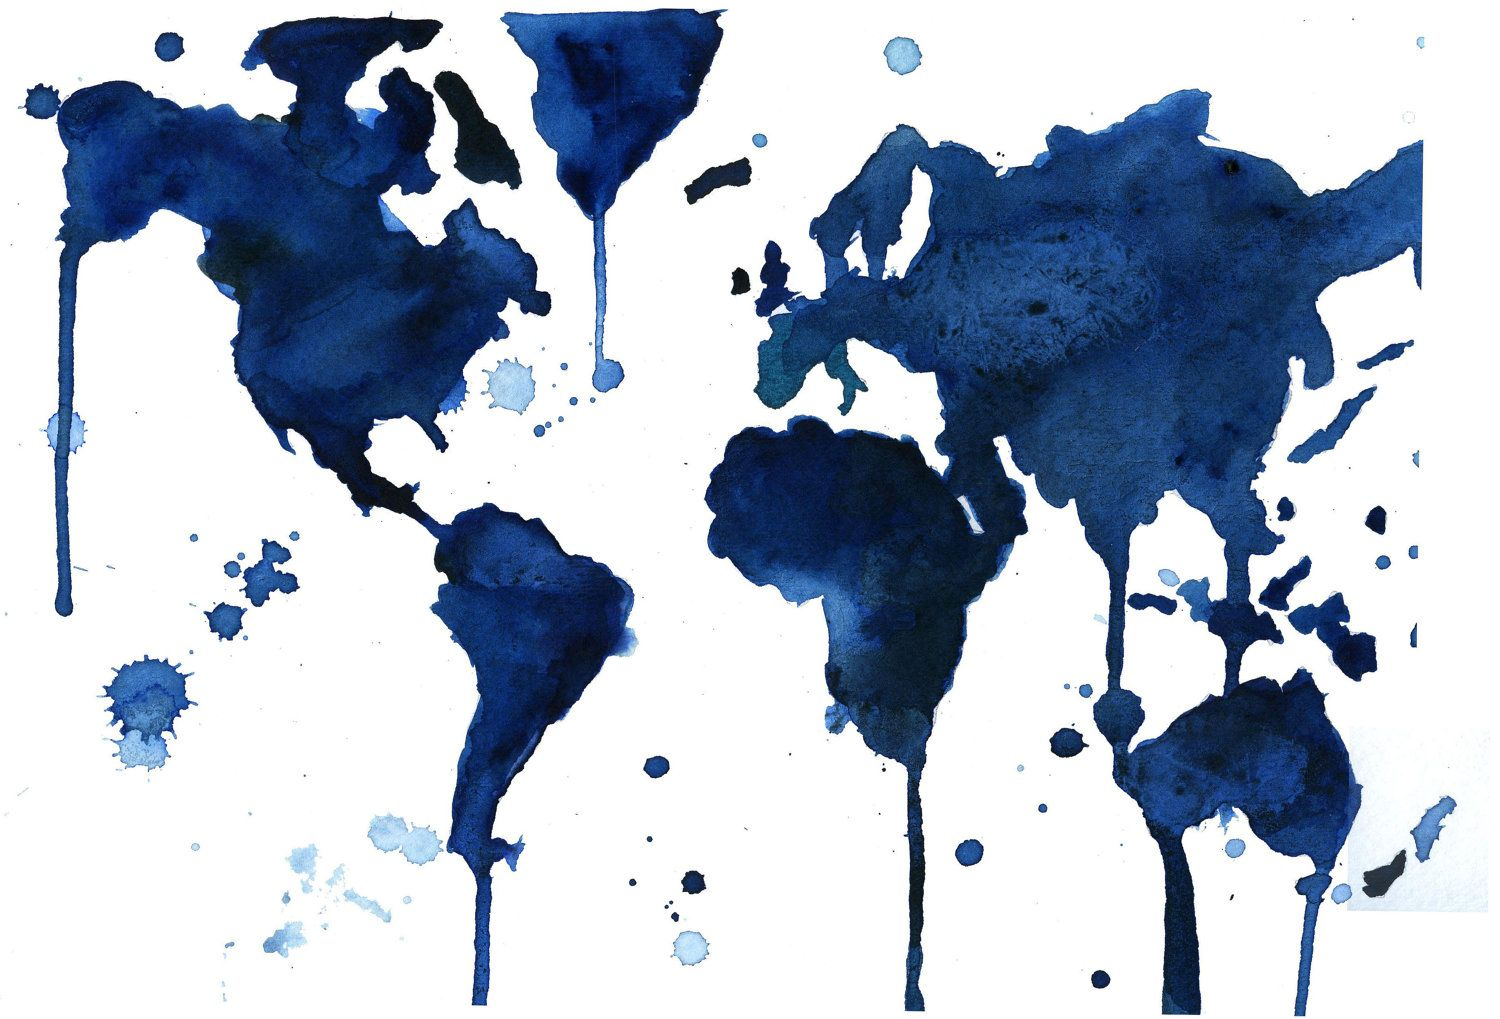 Watercolor world map its a blue blue world watercolor world map its a blue blue world 2500 via etsy for gumiabroncs Image collections